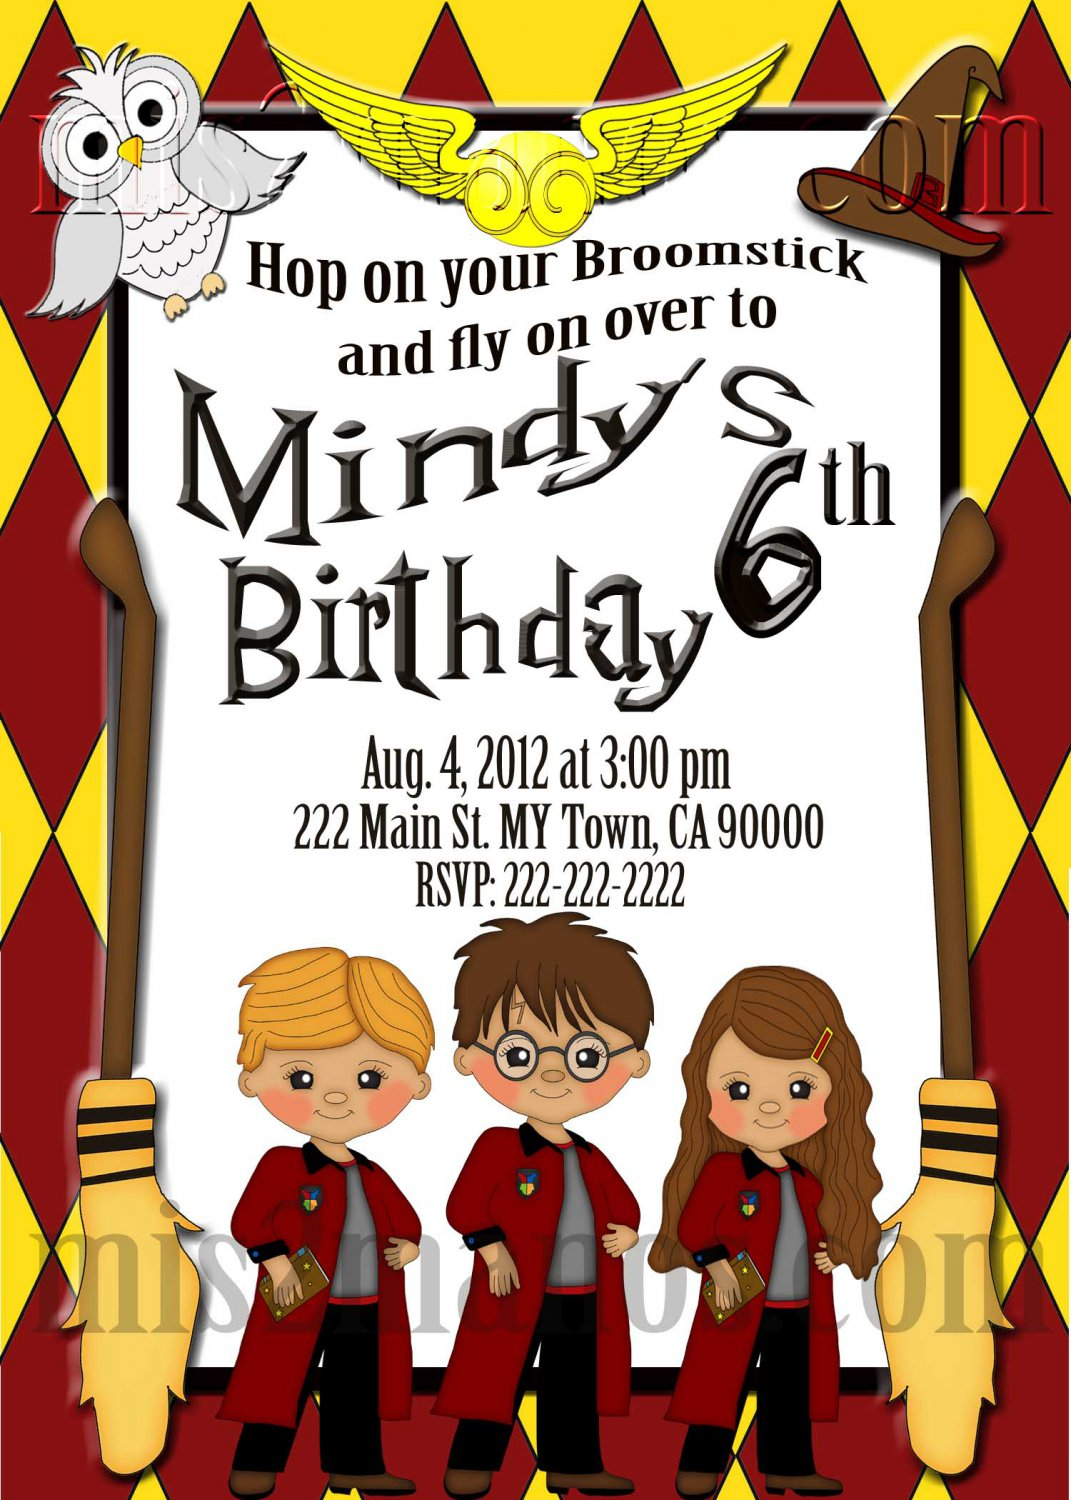 Harry Potter Party Invitations Gangcraftnet - Birthday invitations harry potter printable